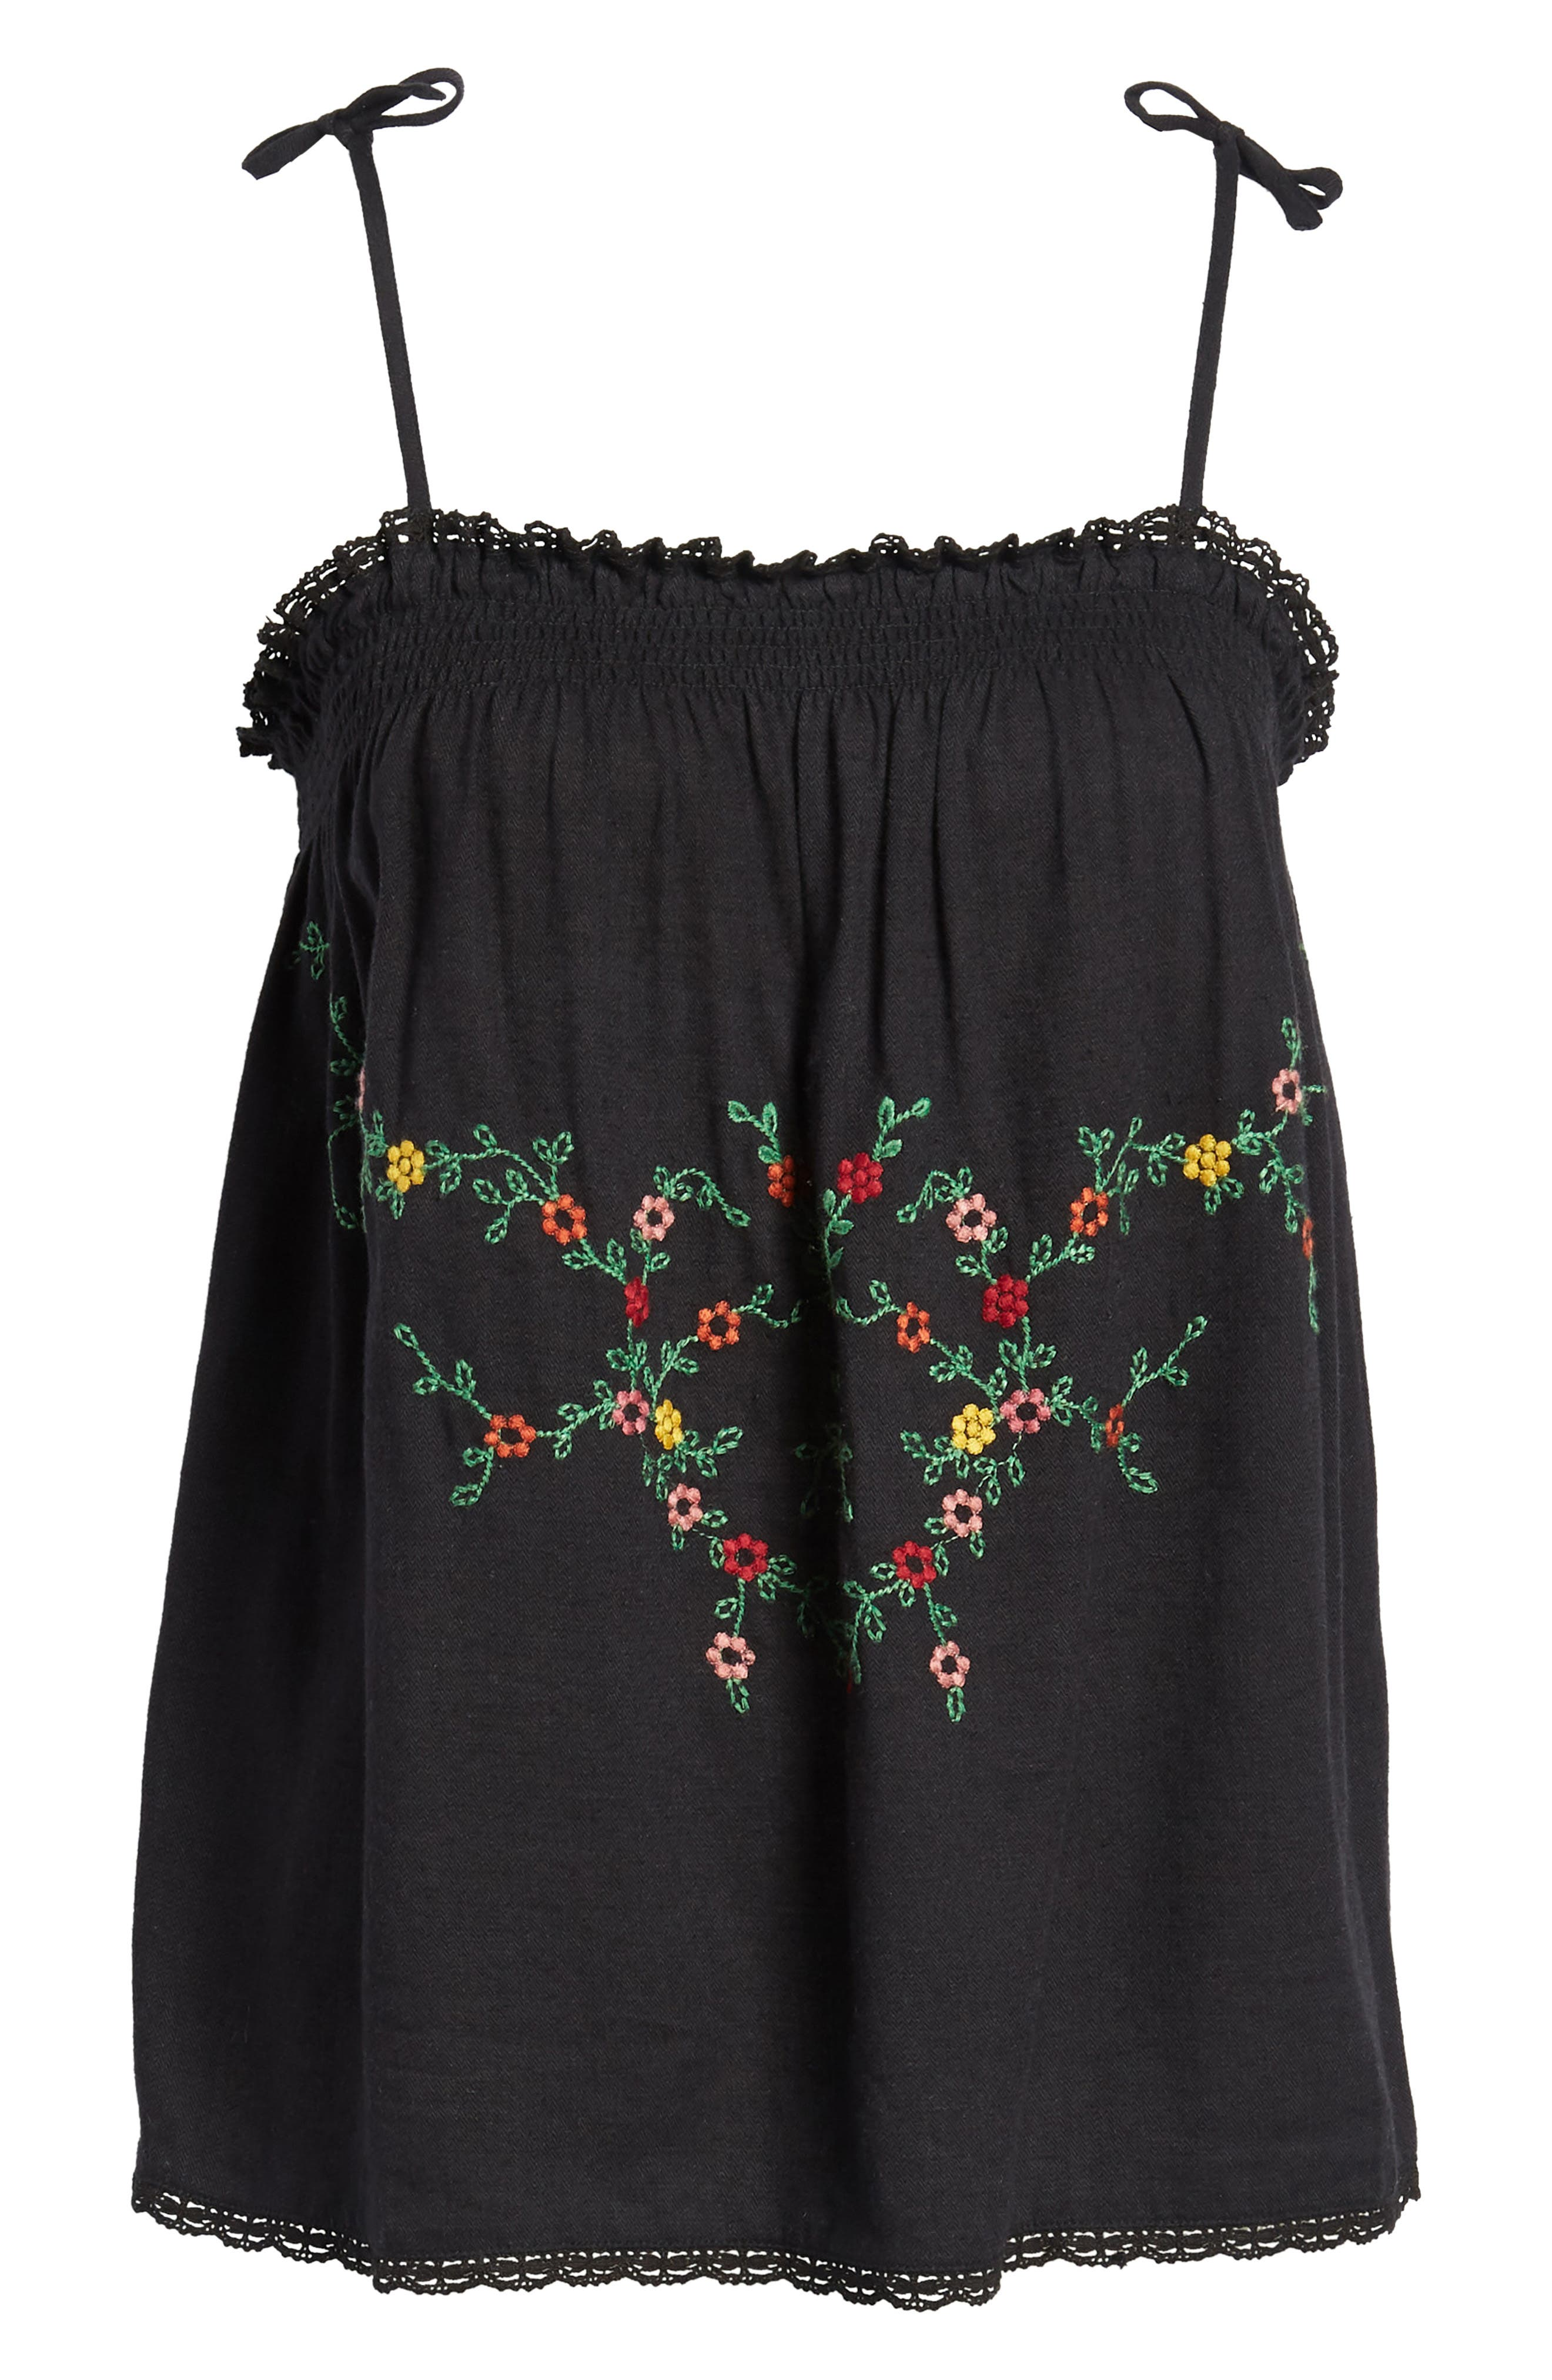 Embroidered Vintage Camisole Top,                             Alternate thumbnail 7, color,                             001